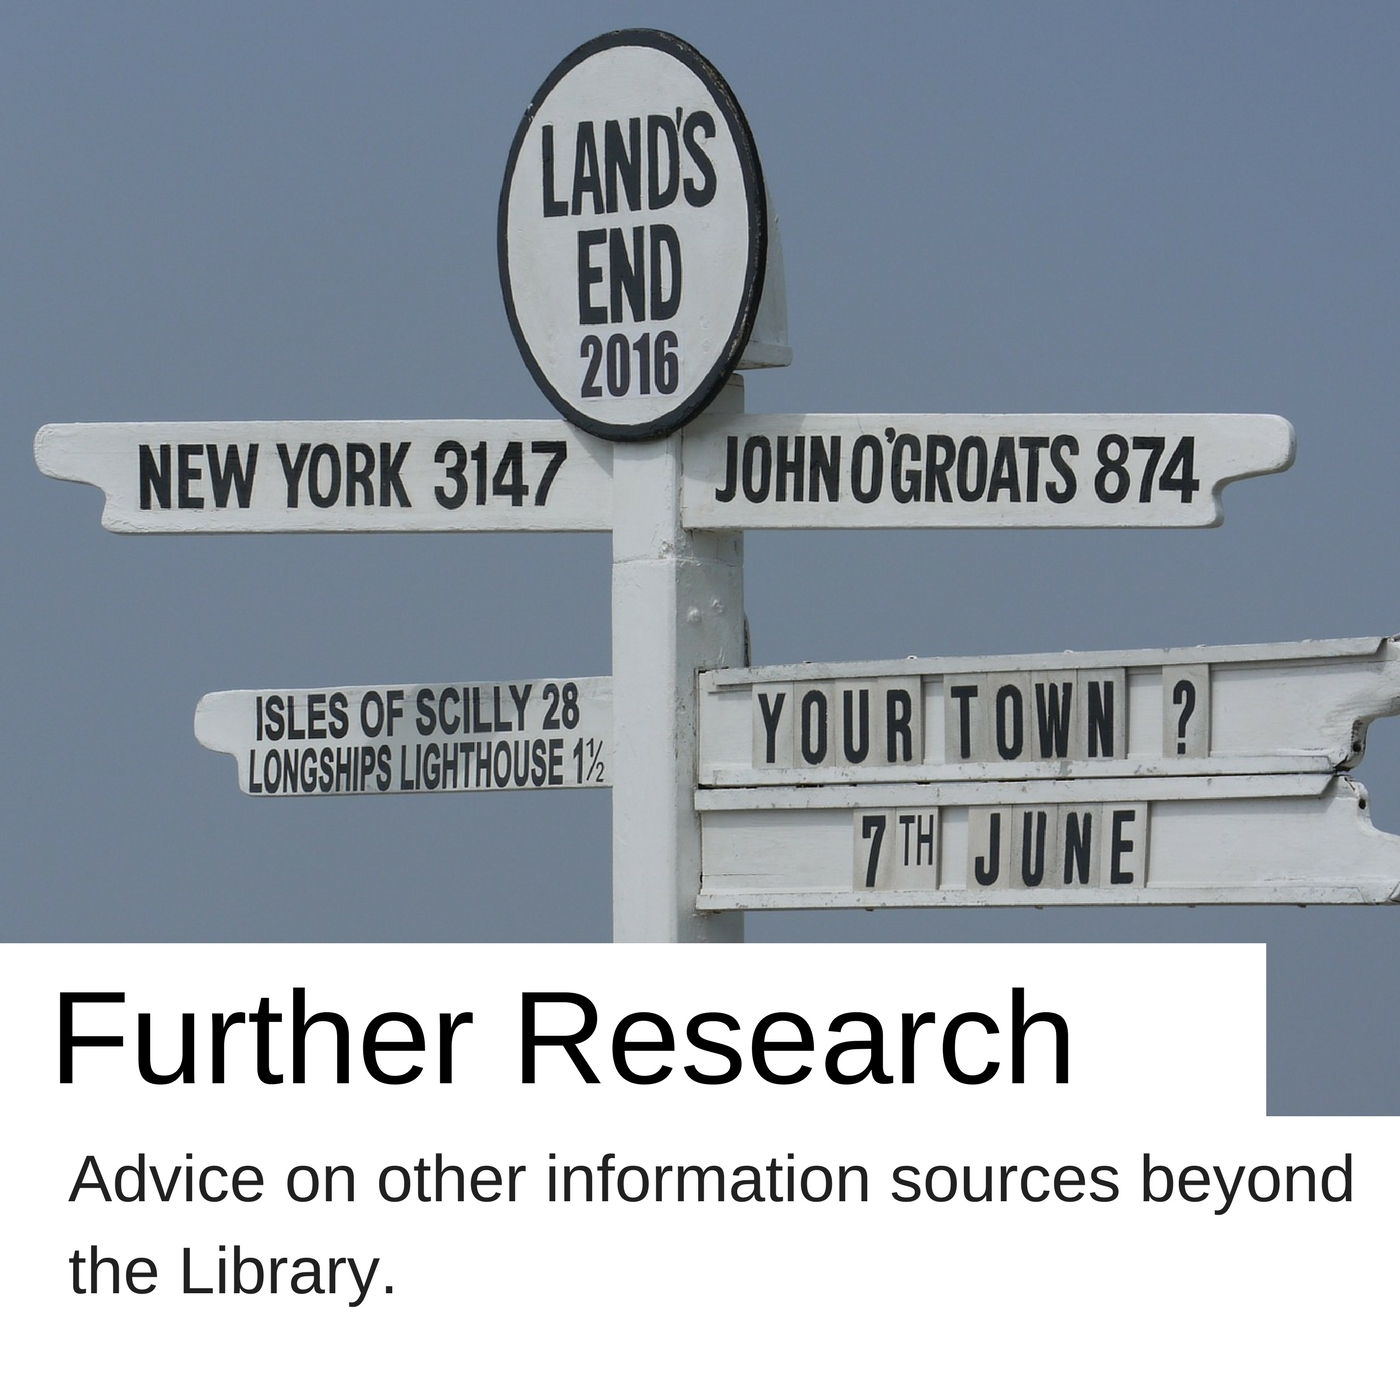 Further research advice on other information sources beyond the Library.